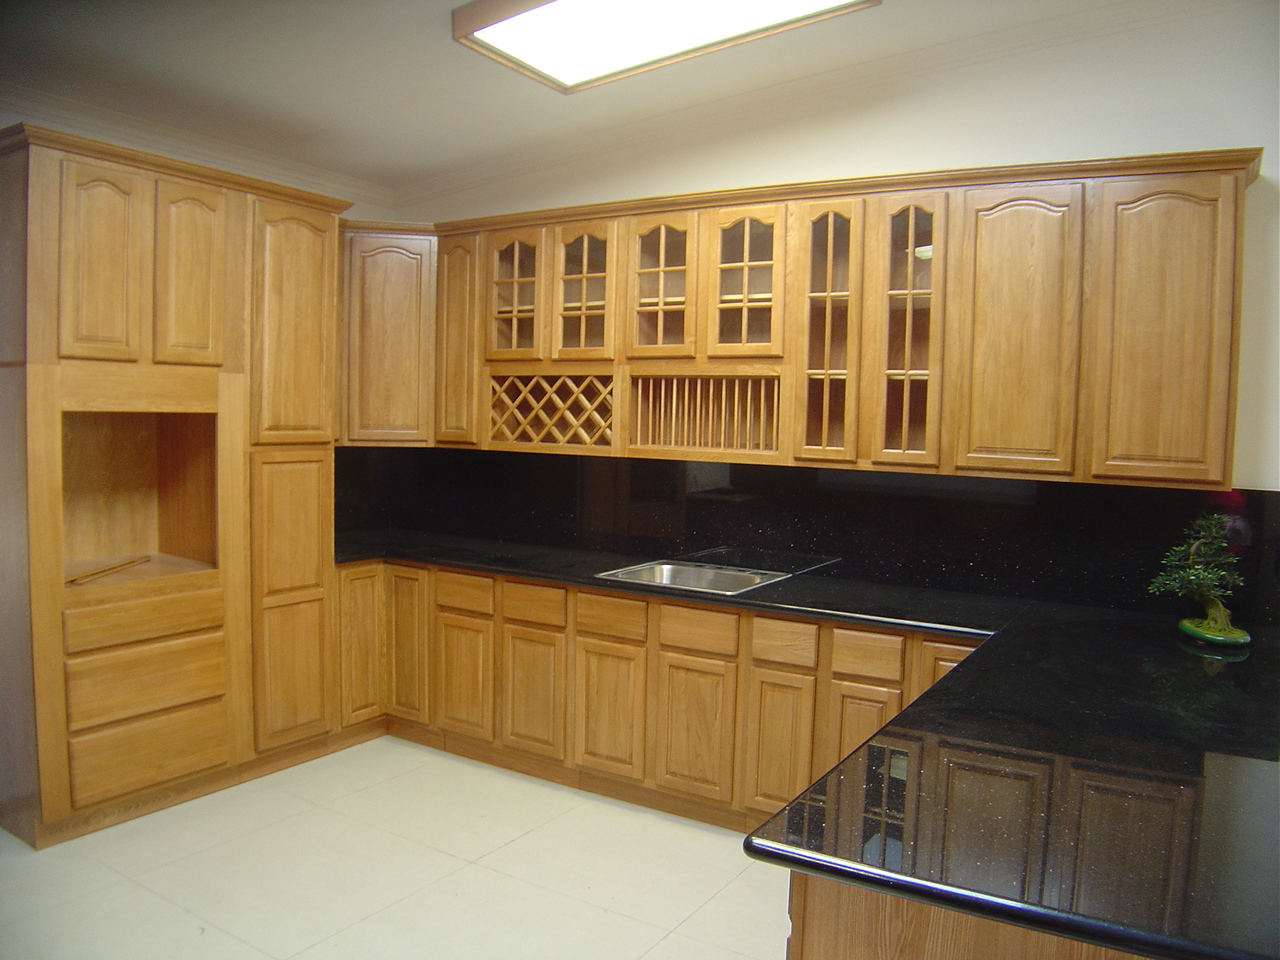 interior design kitchen cabinet oak kitchen cabinets for your interior kitchen minimalist 370